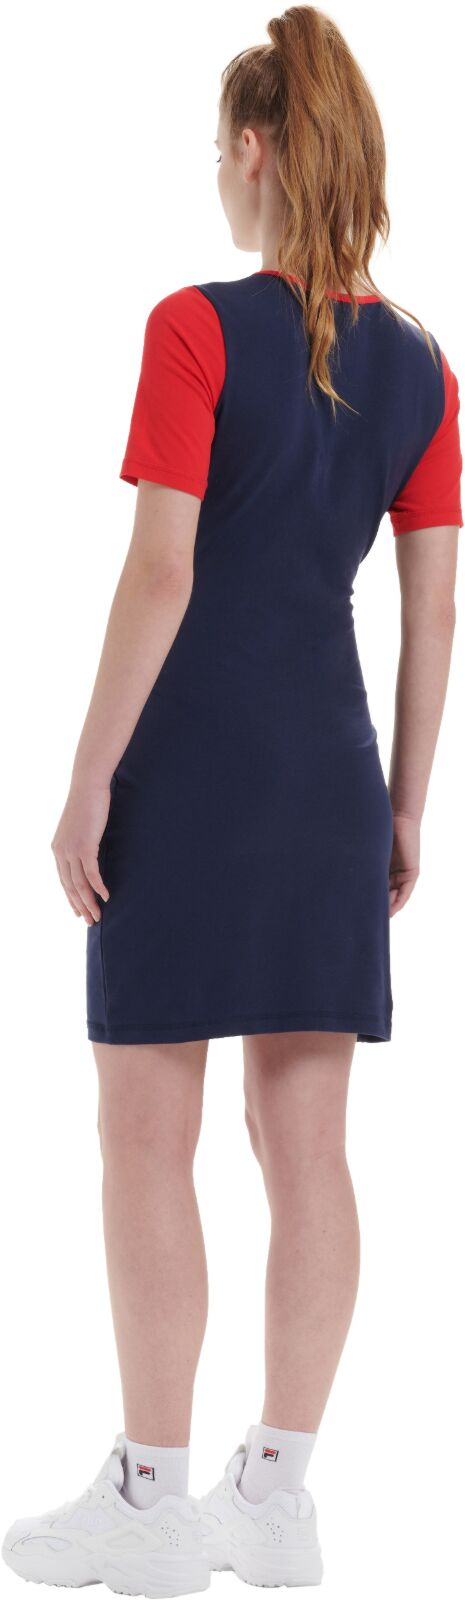 Fila Roslyn Colourblock Bodycon Dress Navy